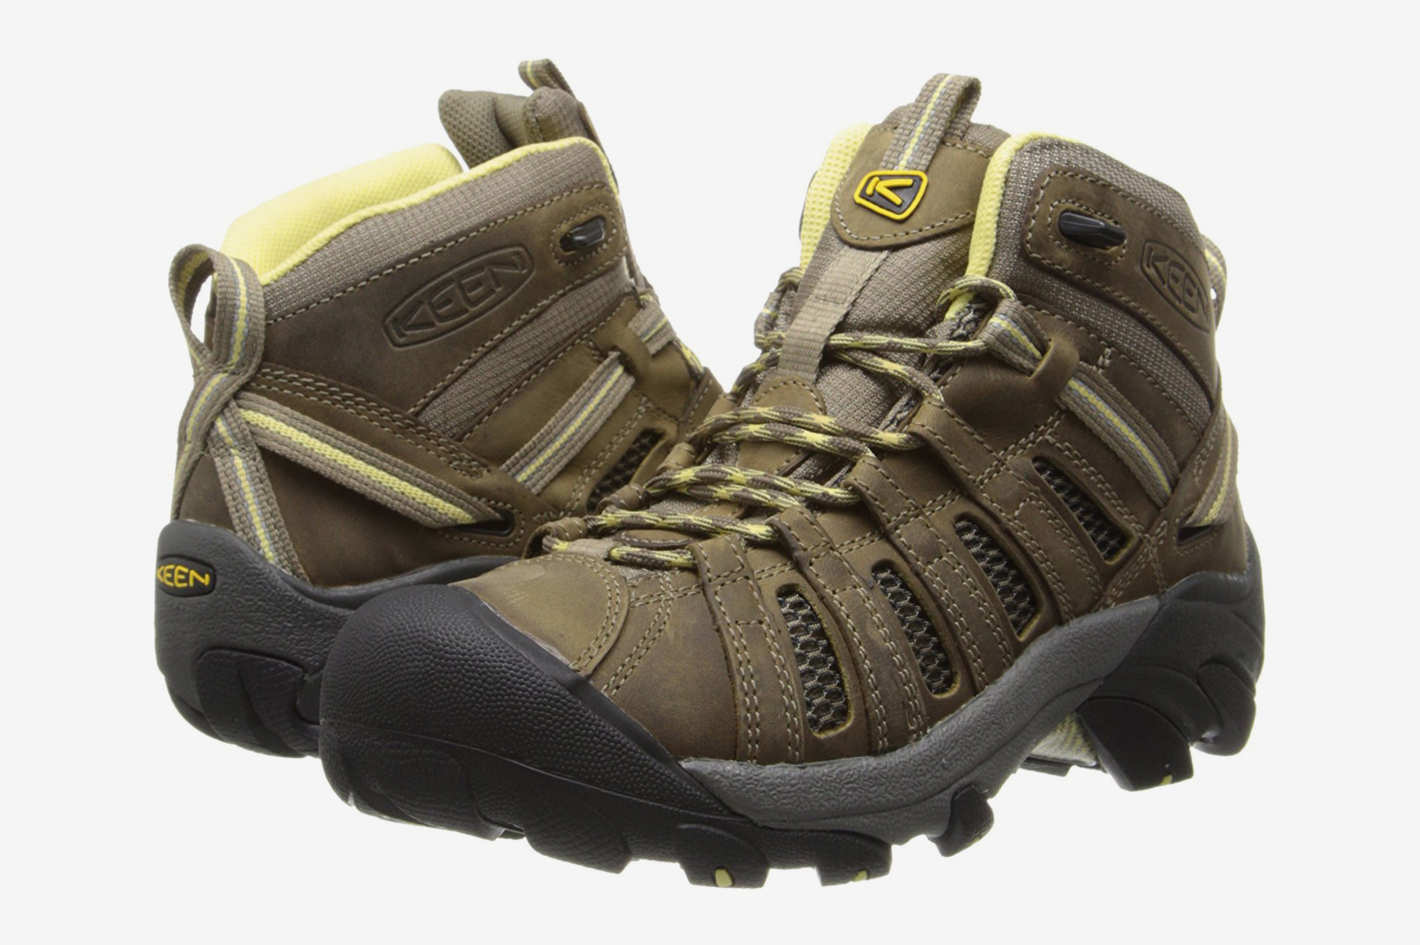 Keen Women's Voyageur Mid Hiking Boot